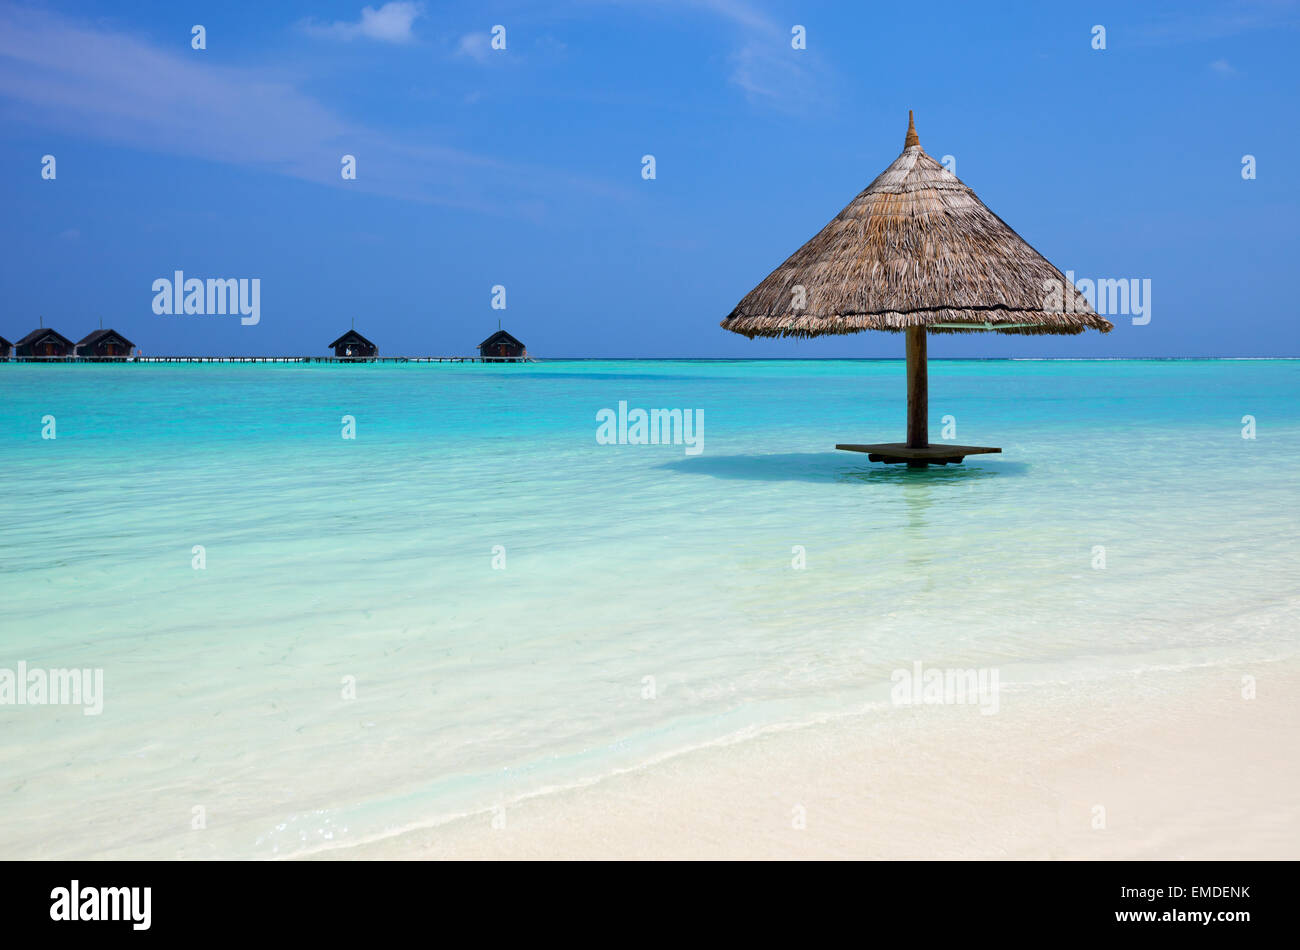 Beautiful tropical beach at Maldives - Stock Image